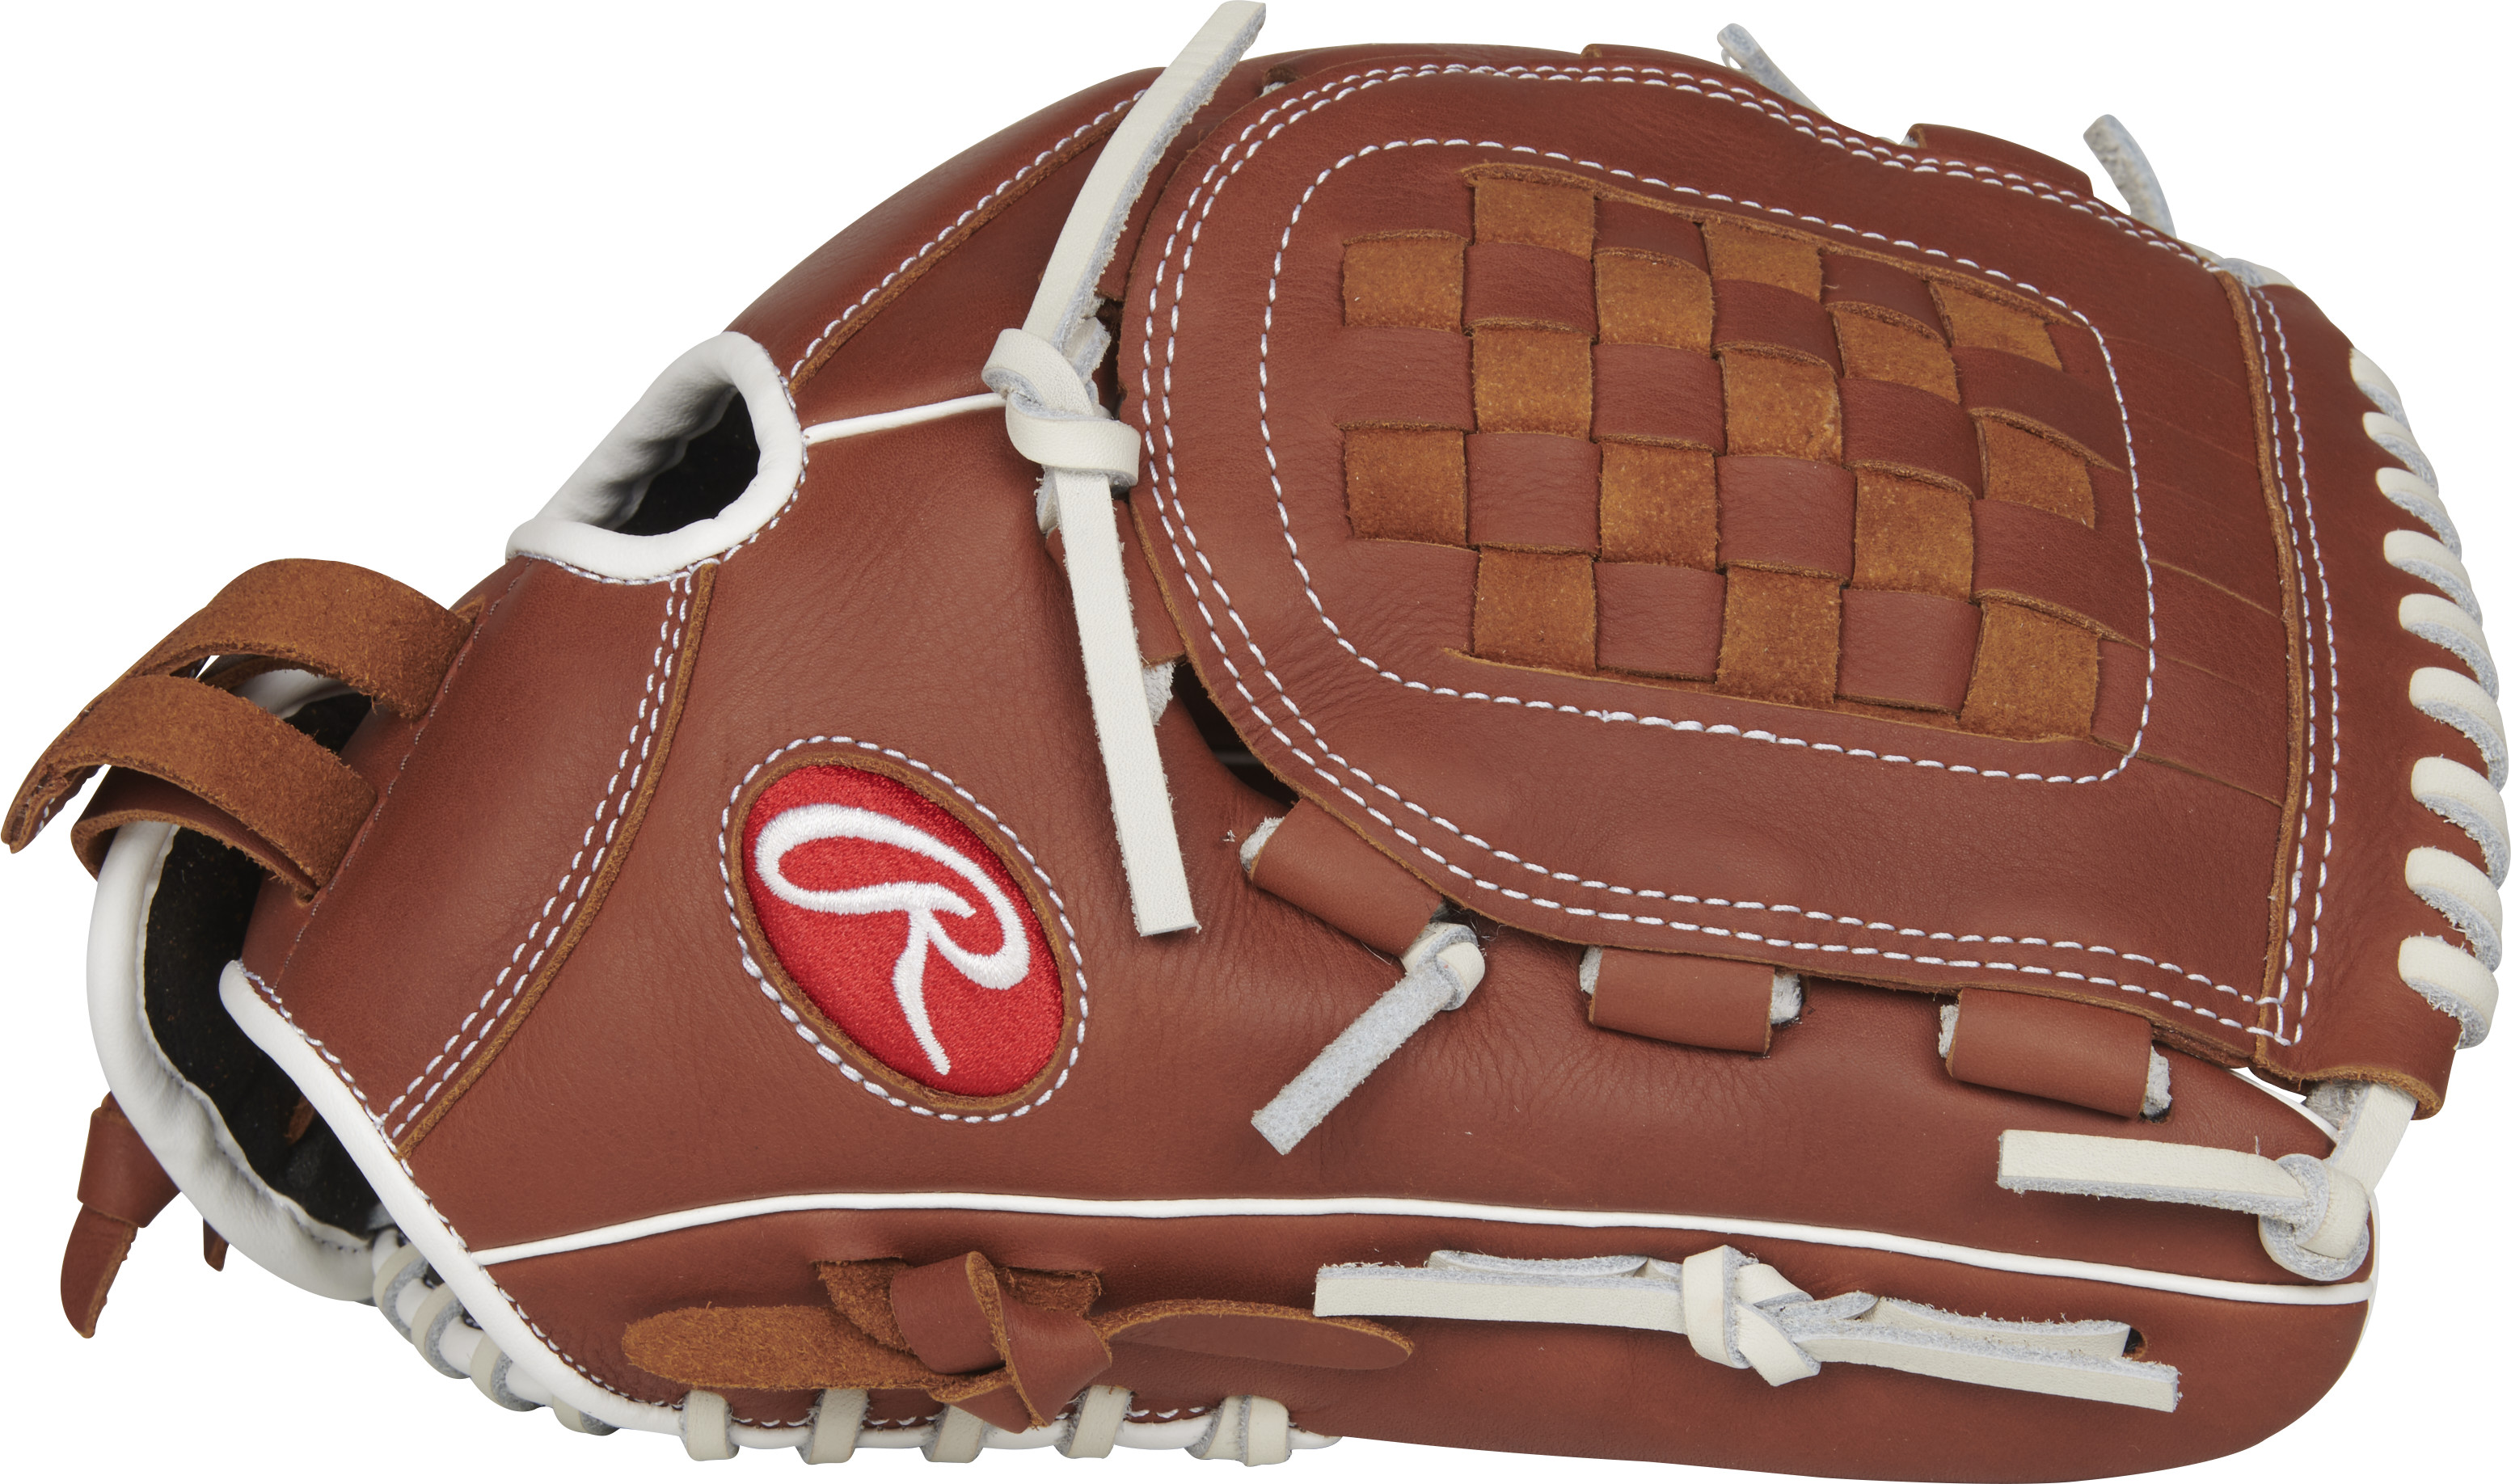 http://www.bestbatdeals.com/images/gloves/rawlings/R9SB120-3DB-3.jpg